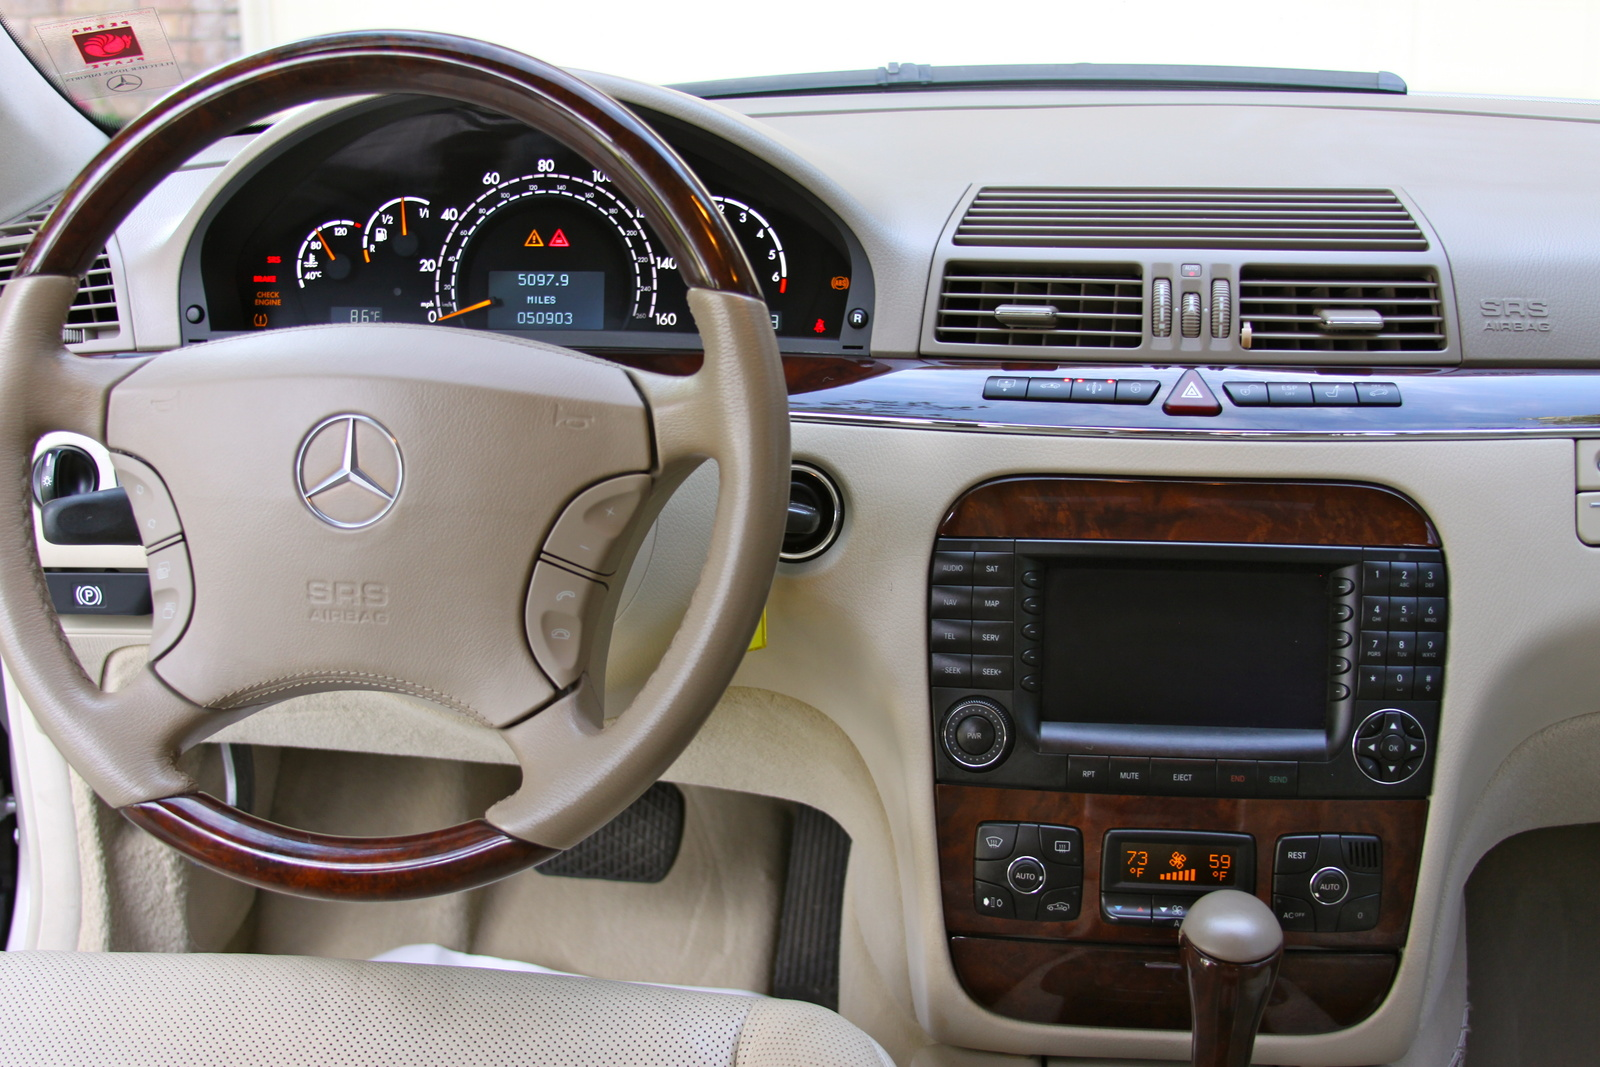 Picture of 2005 mercedes benz s class s500 4matic interior for 2005 s500 mercedes benz